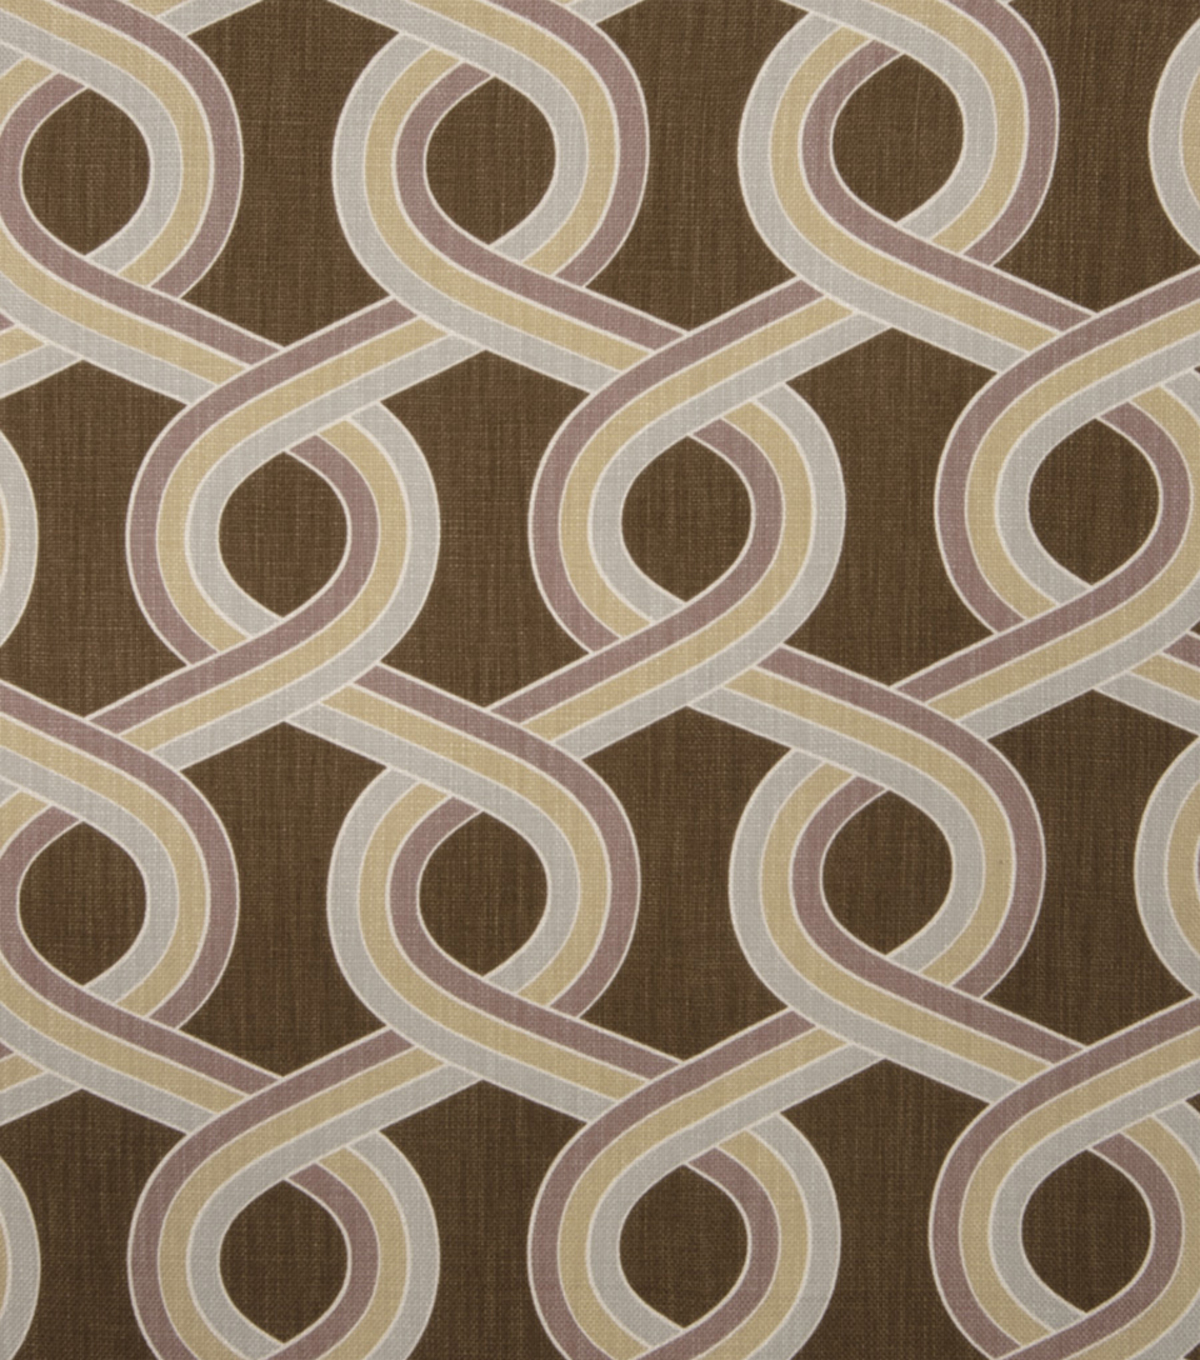 Home Decor 8\u0022x8\u0022 Fabric Swatch-Upholstery Fabric Eaton Square Erica Cocoa